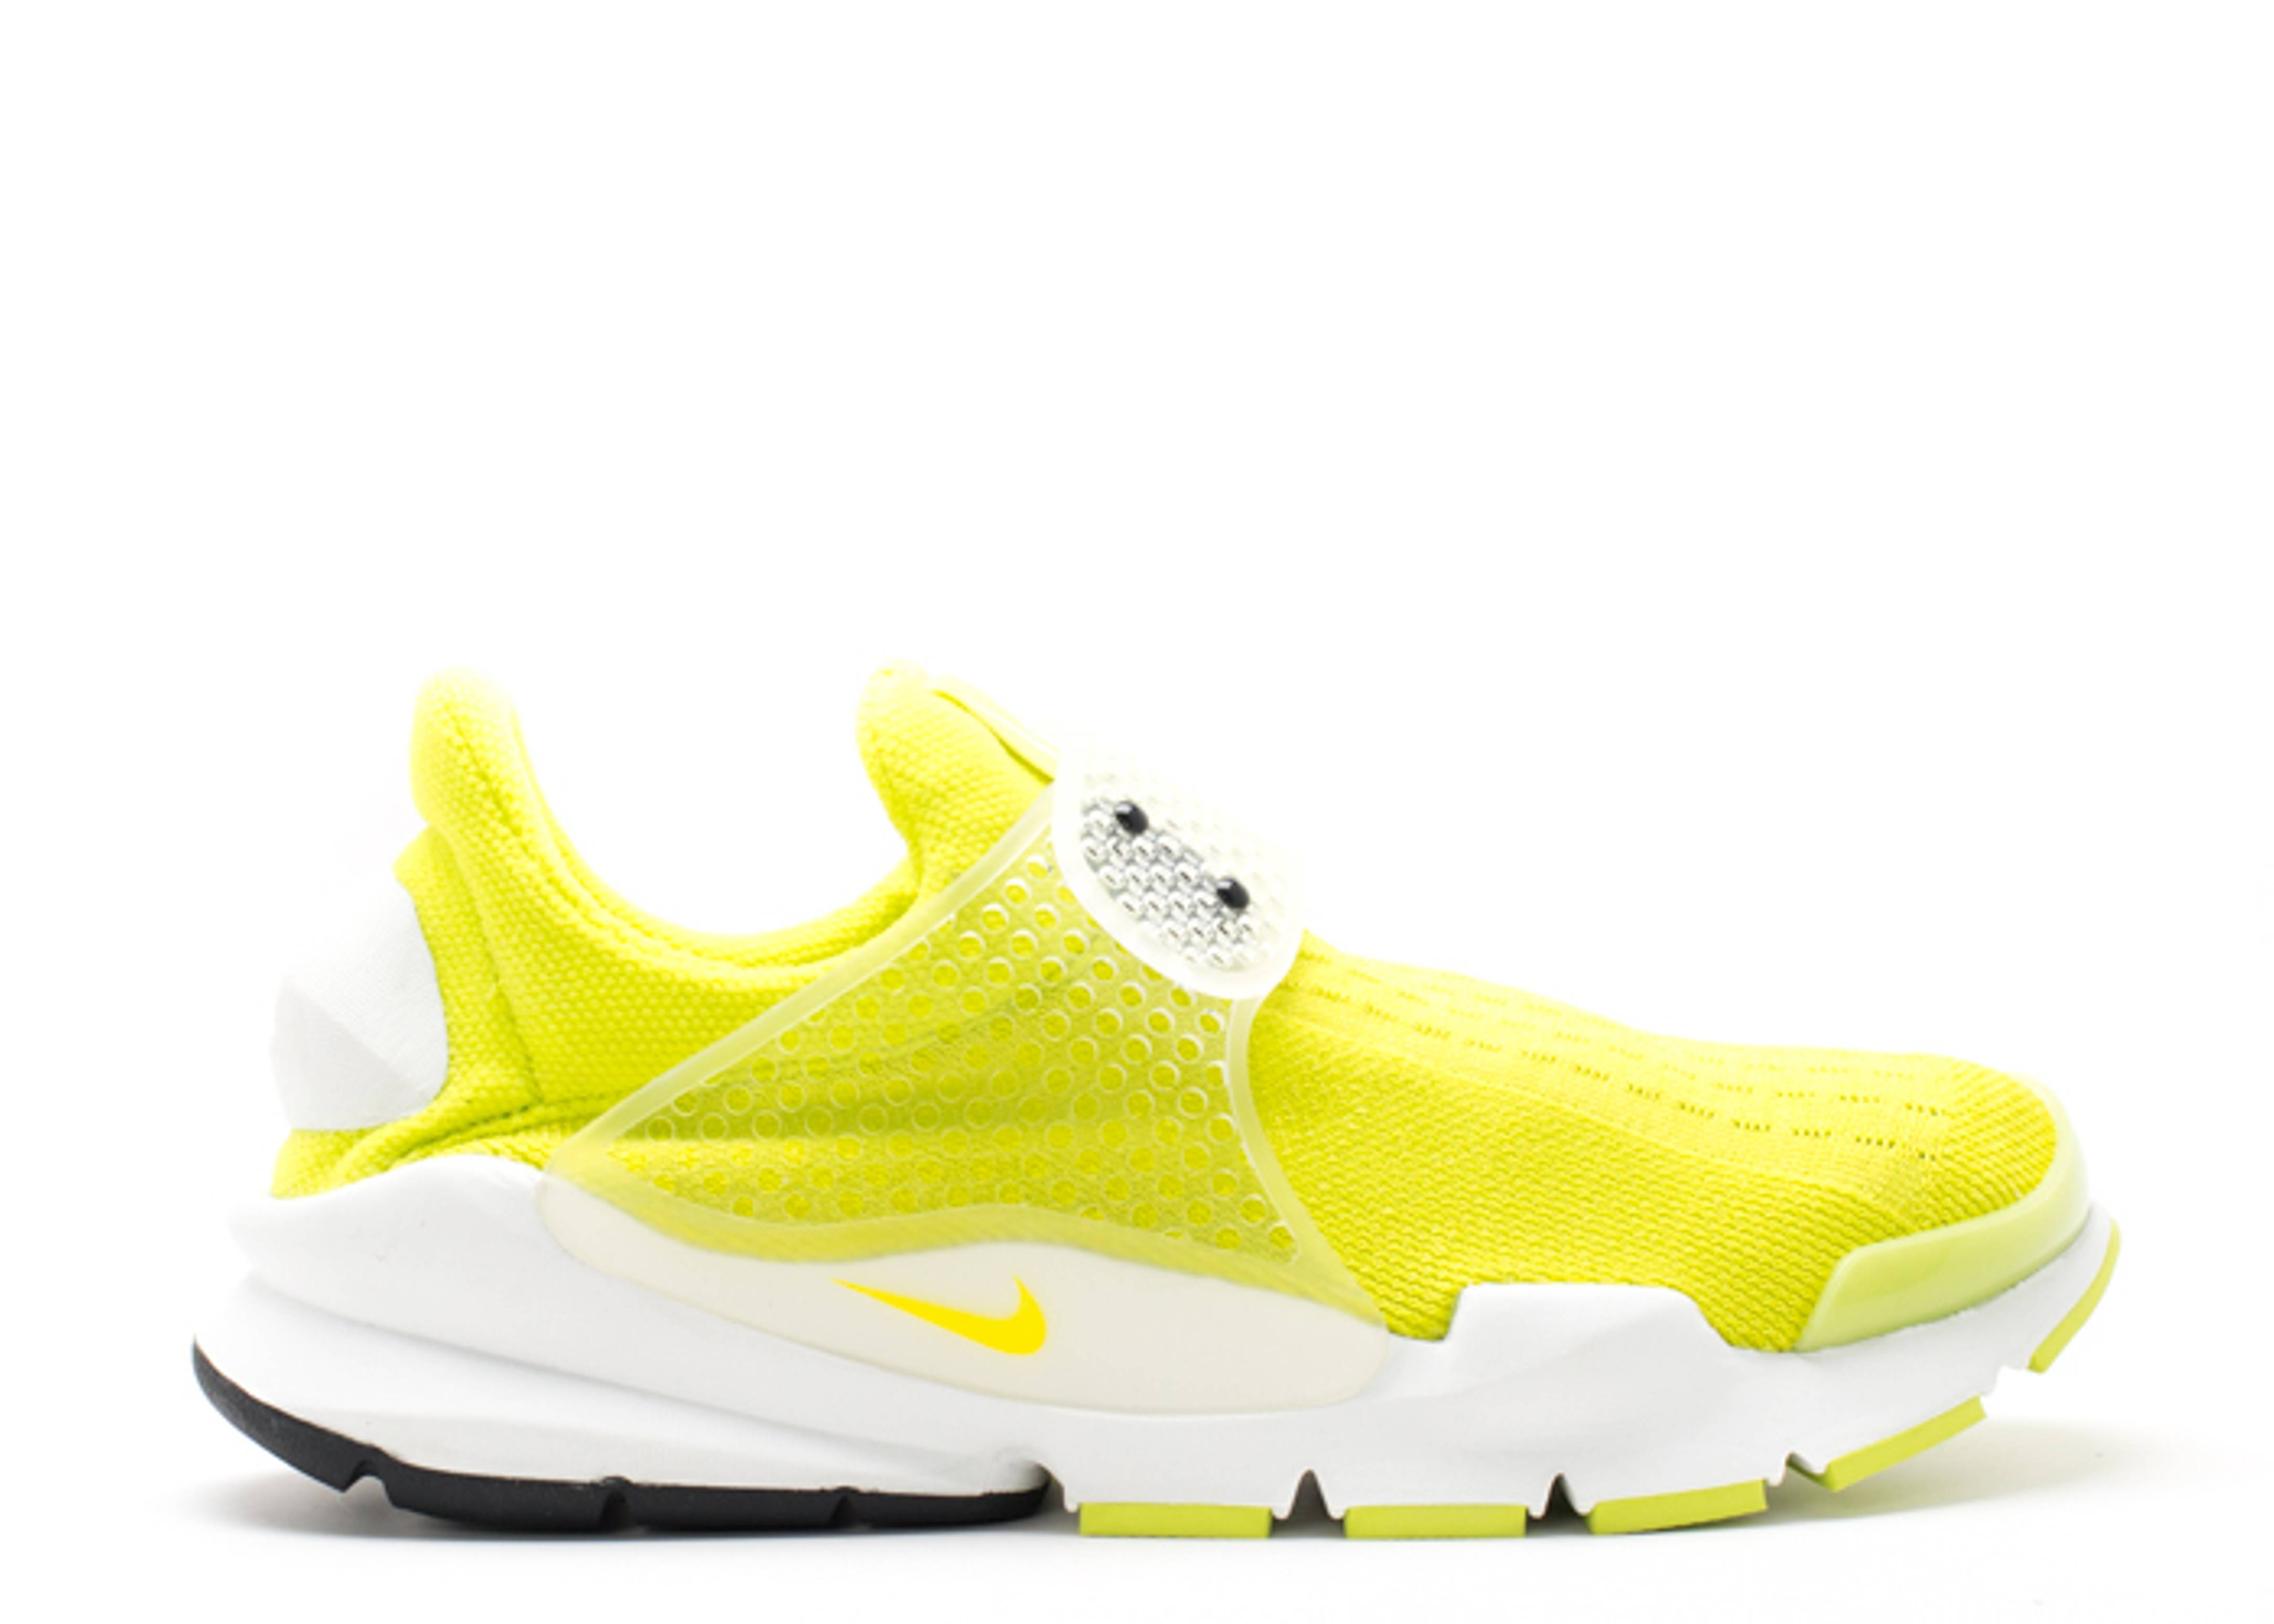 the latest 5e110 779f1 Sock Dart Sp - Nike - 686058 771 - neon yellow/nnyellow-smmt ...